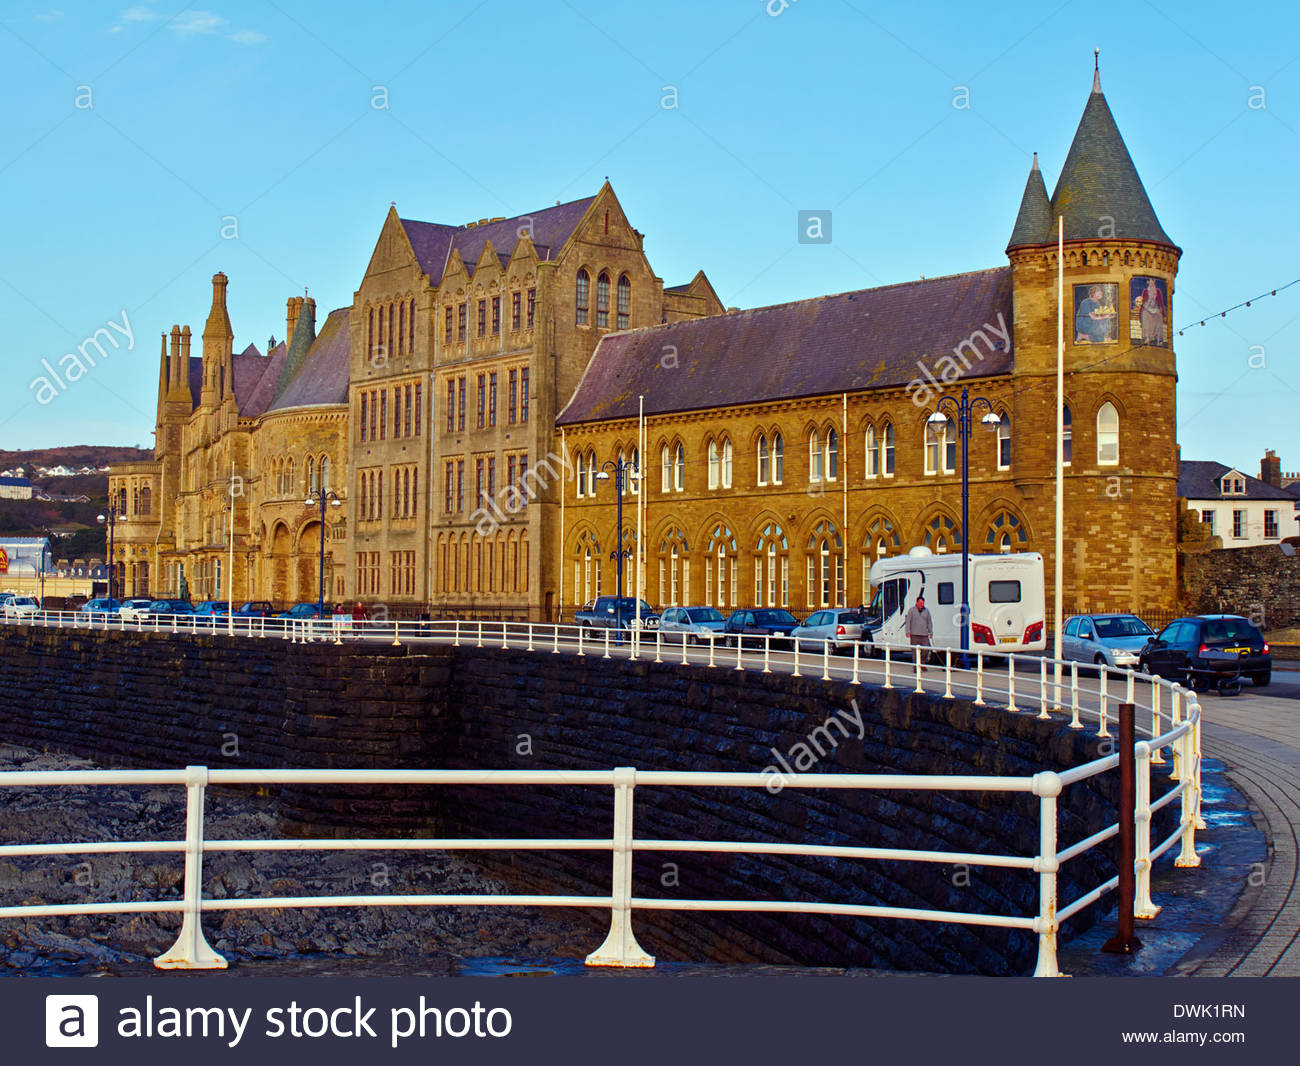 aberystwyth university college with mosiacs on the south tower - Stock Image